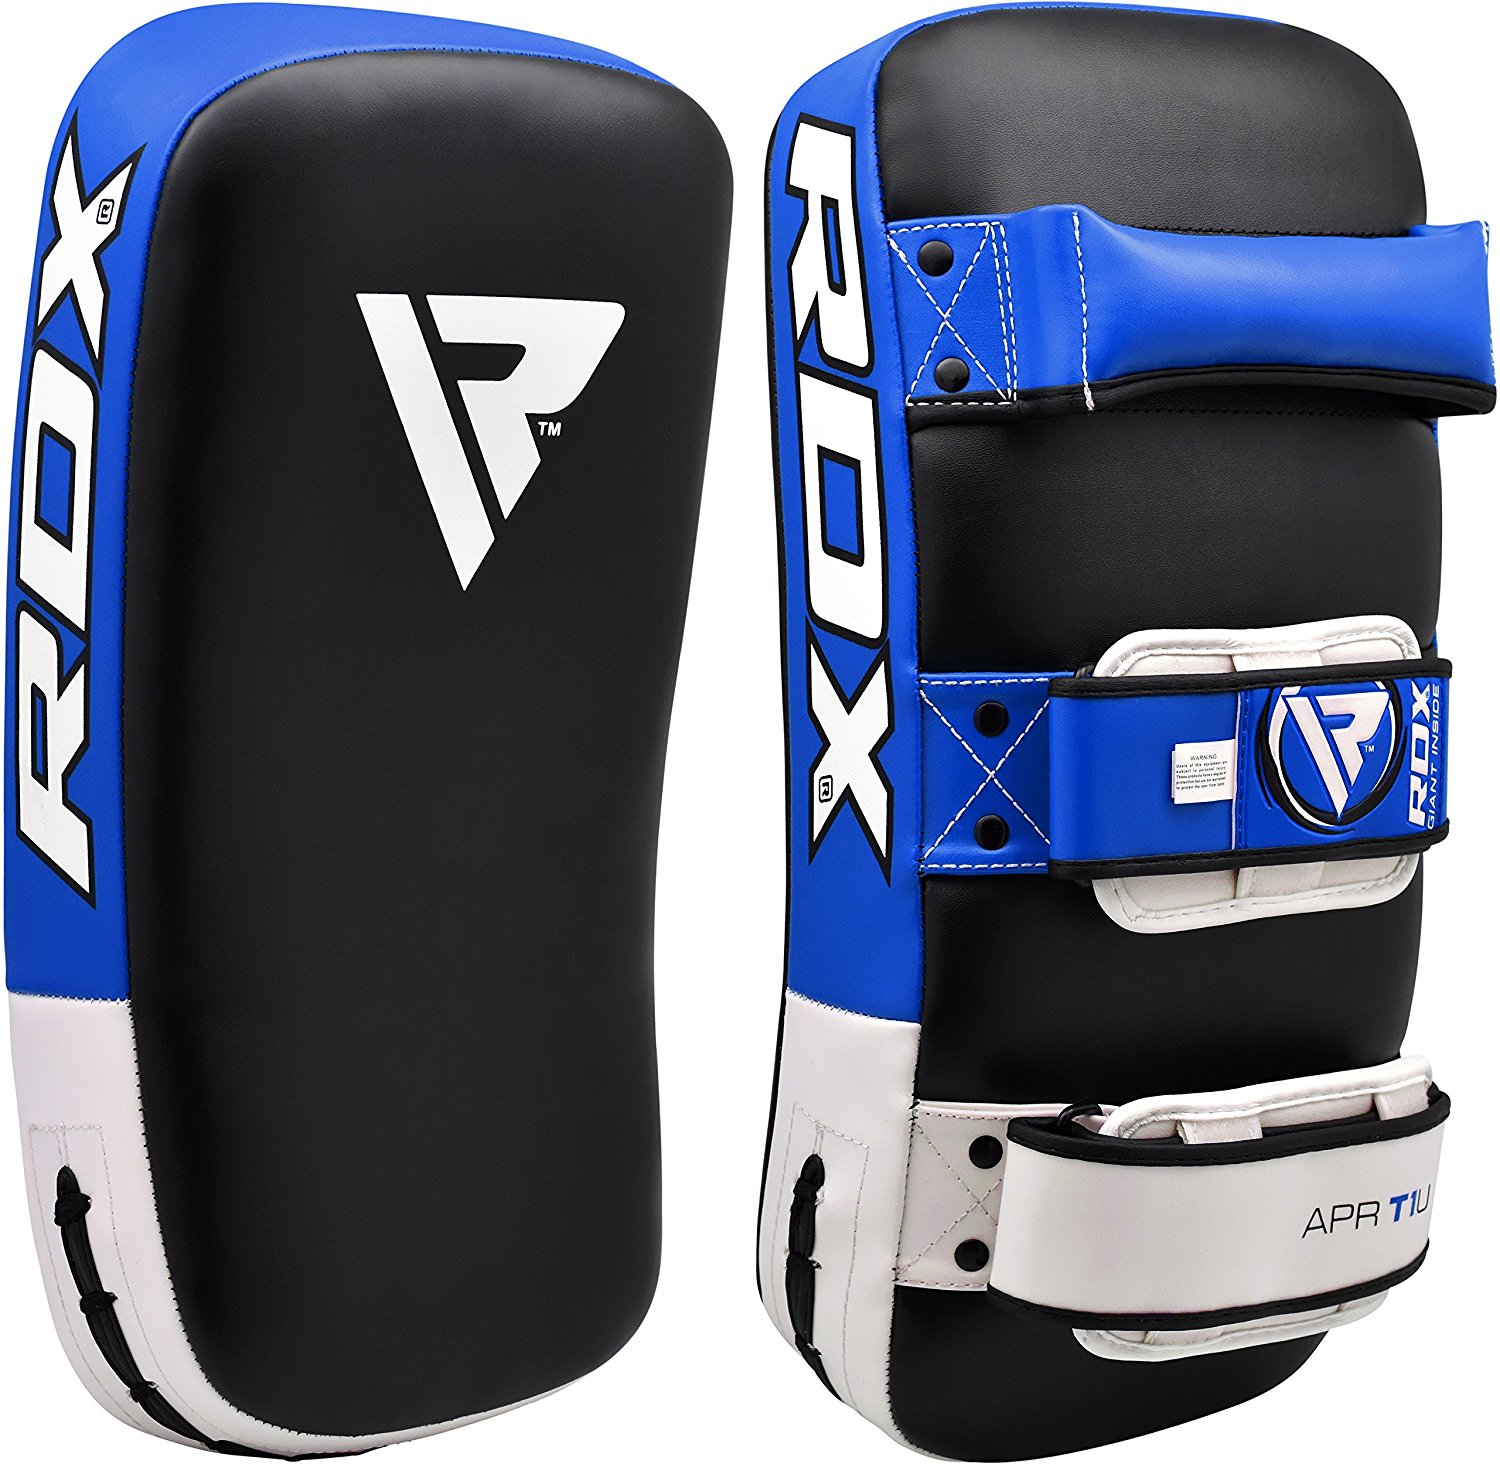 RDX Maya Hide Leather Thai-Kick Pads, Blue (Sold as SINGLE ITEM)